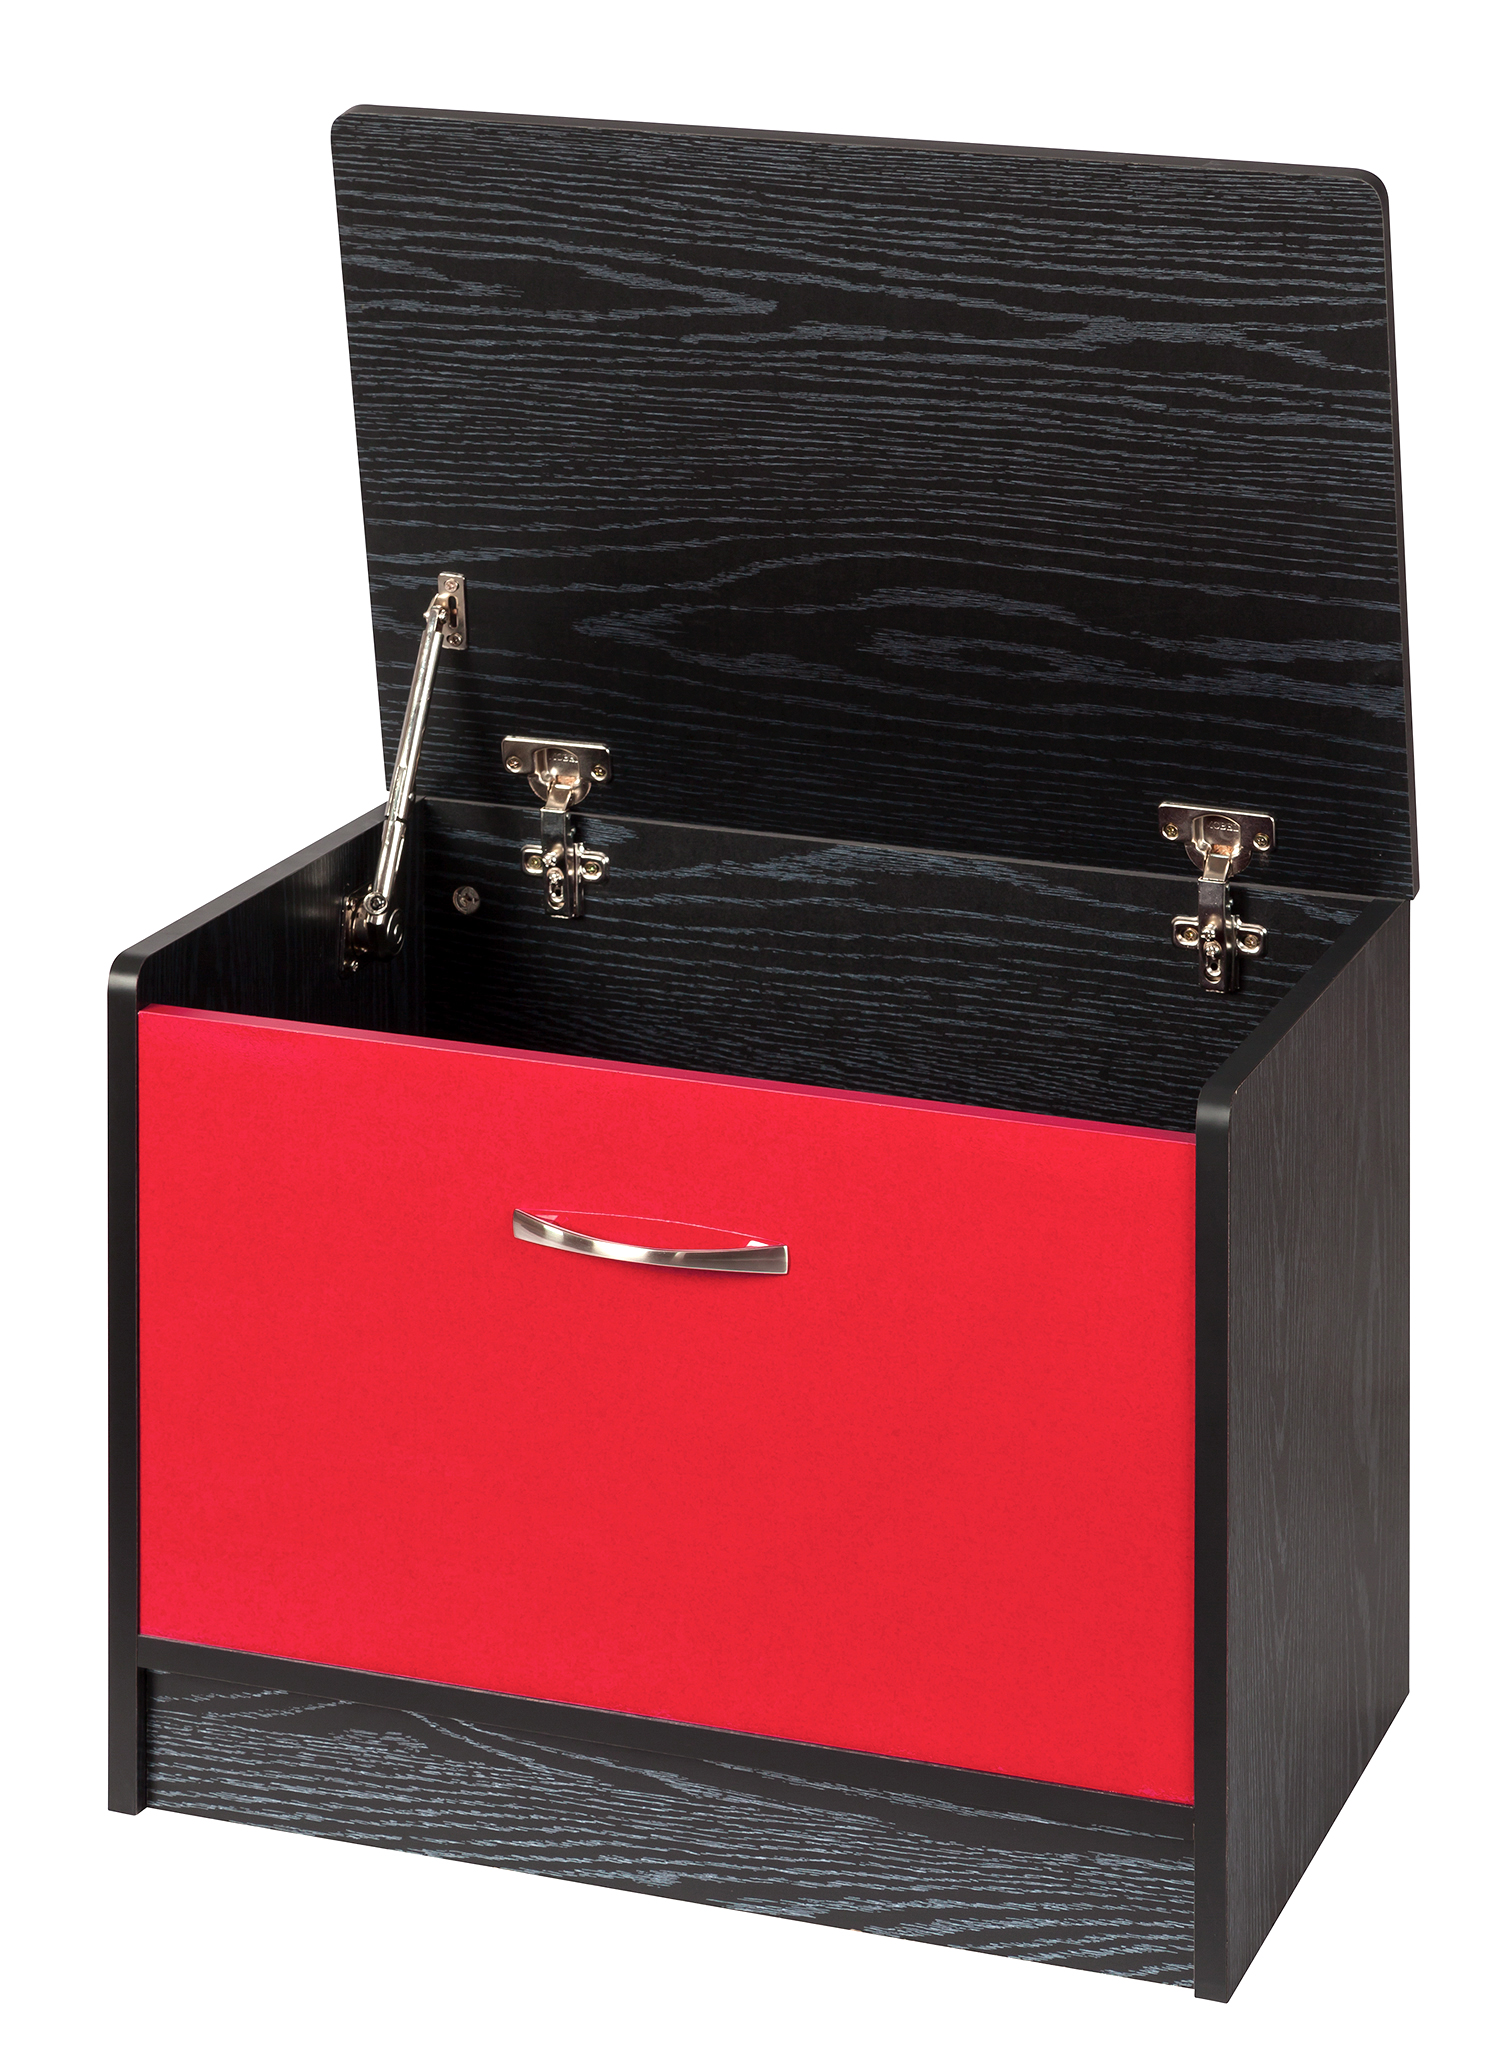 Marina High Gloss Ottoman Storage Box   Red U0026 Black